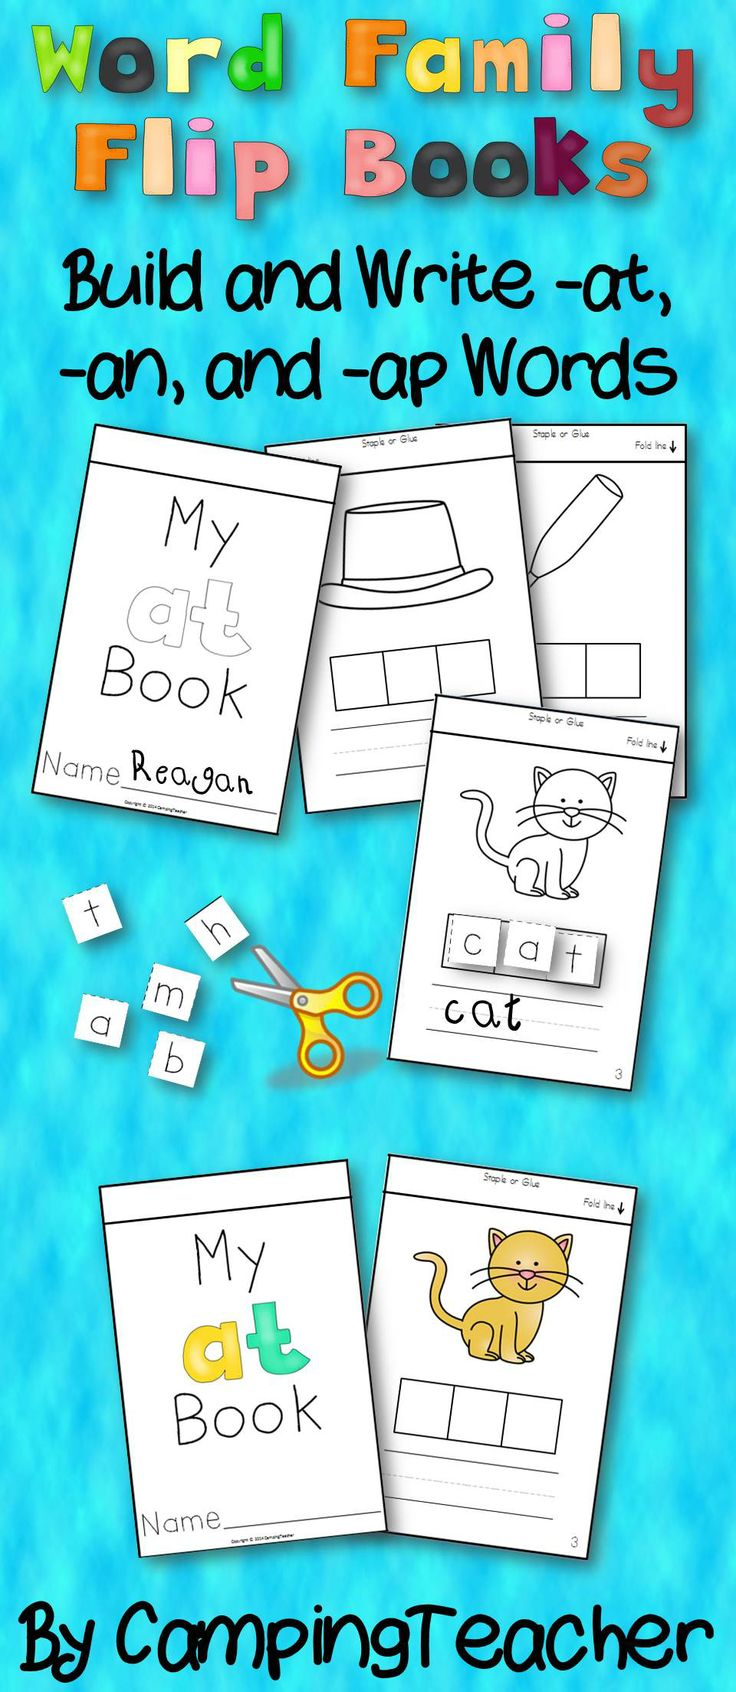 worksheet Ap Word Family Worksheets best 25 at word family ideas on pinterest flip books build and write an ap